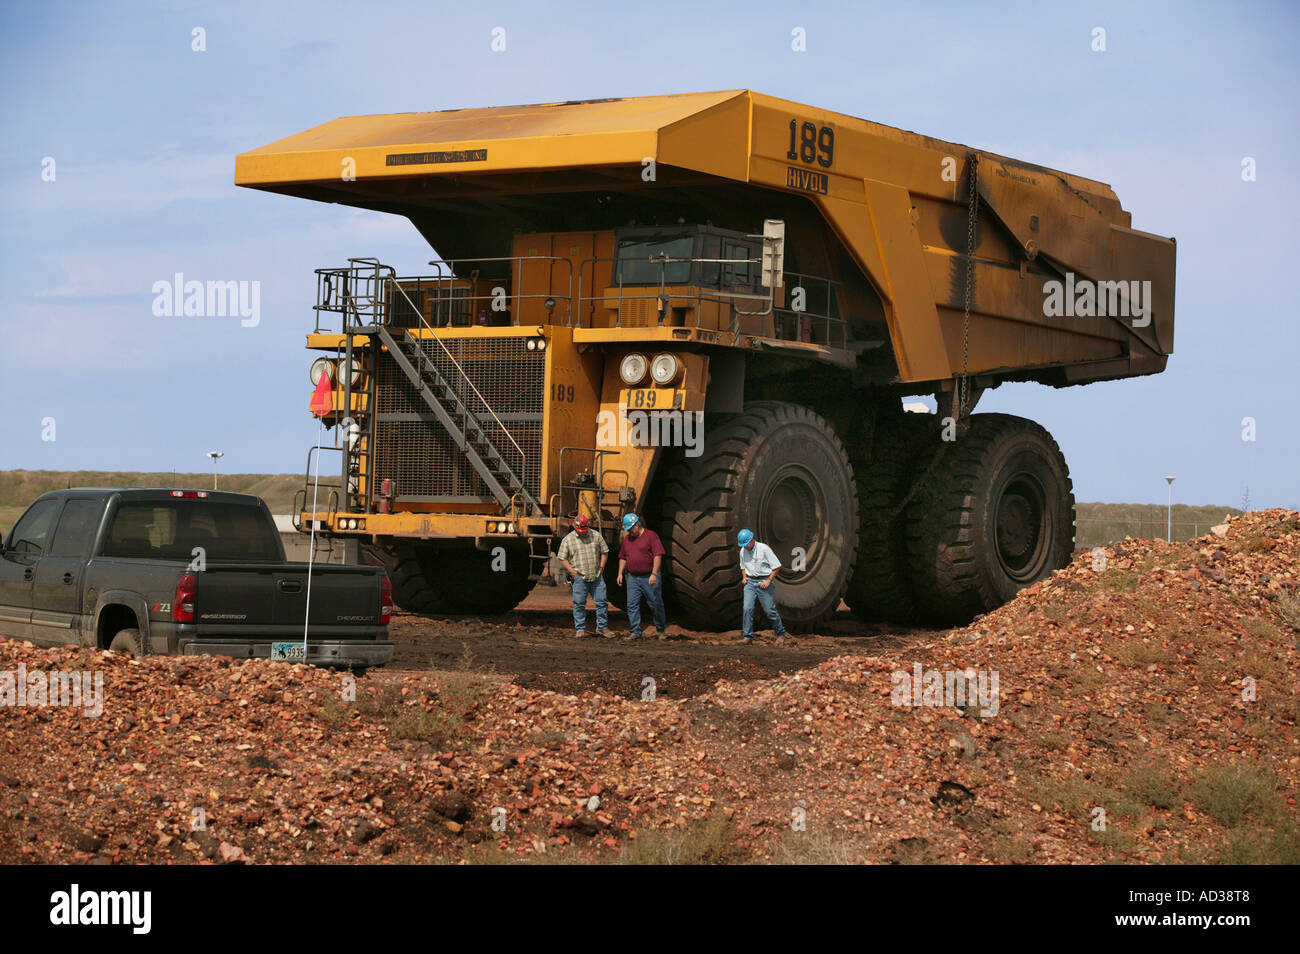 Massive dump truck with people and pickup truck in front at the black thunder coal mine near gillette wyoming usa